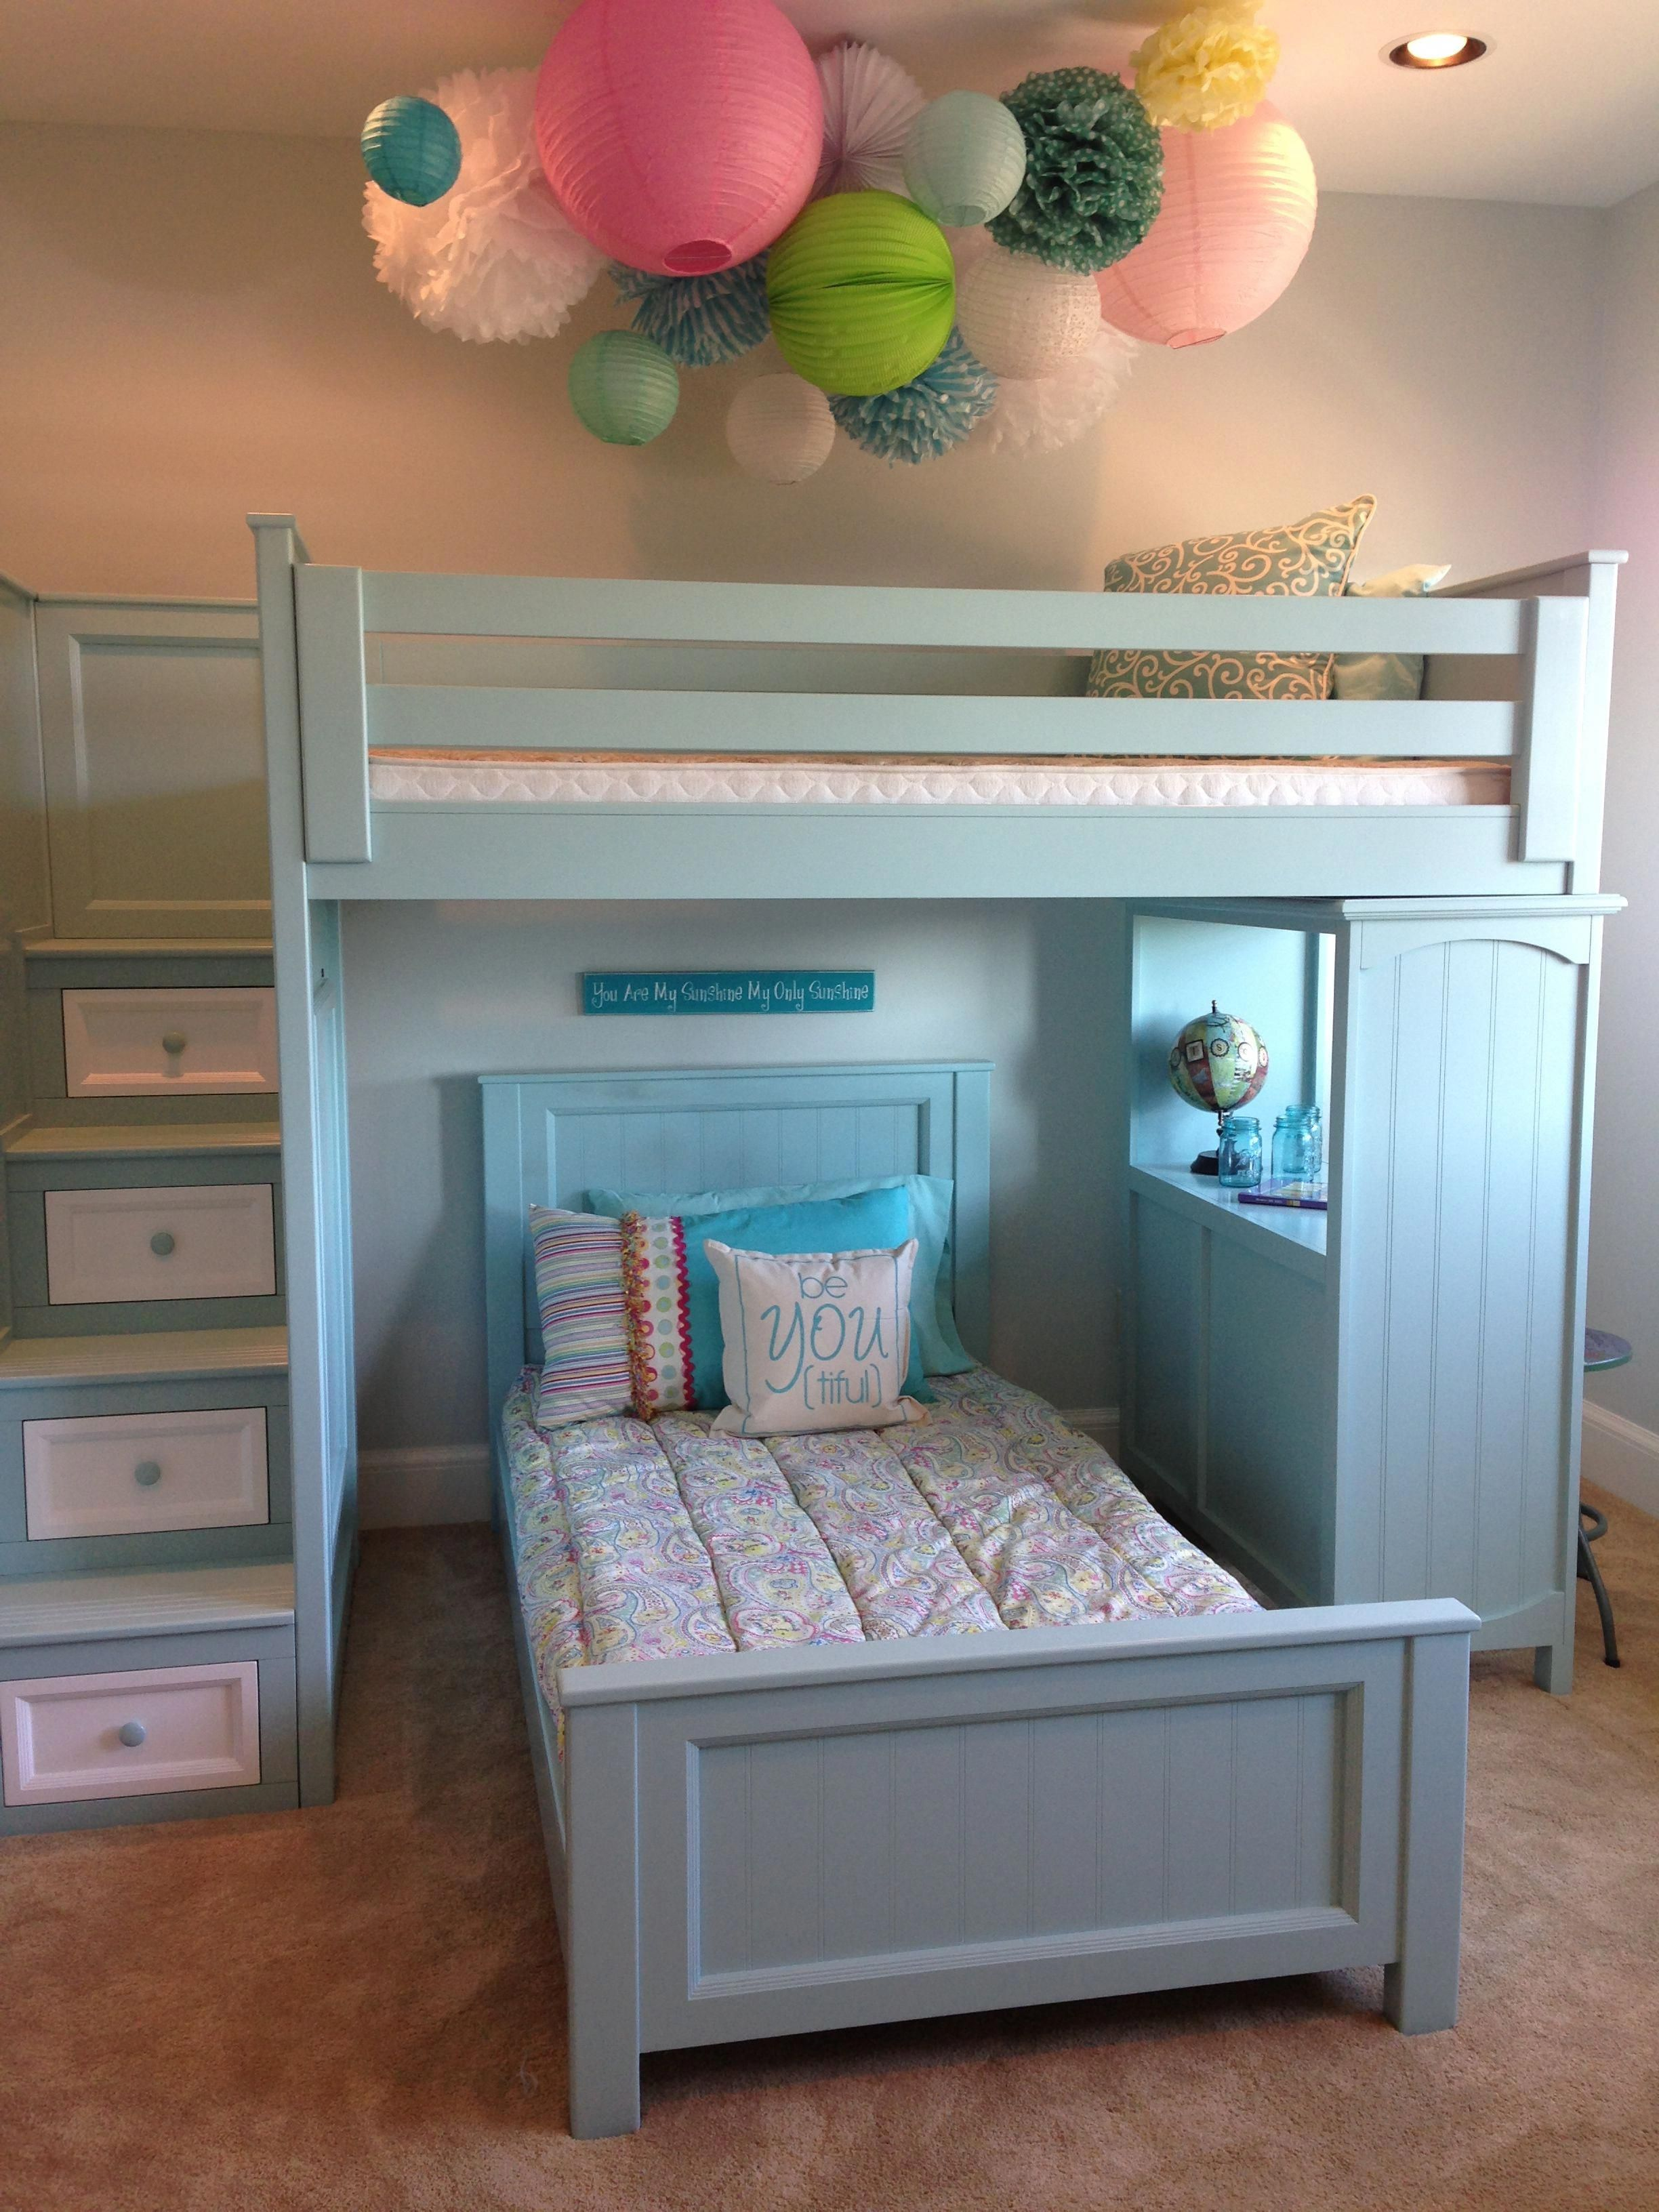 This Sydney Bunk Bed Would Be So Cute For A Girls Room Great Colors And A Nice Place To Relax I Love With Images Girls Bunk Beds Bunk Bed Rooms